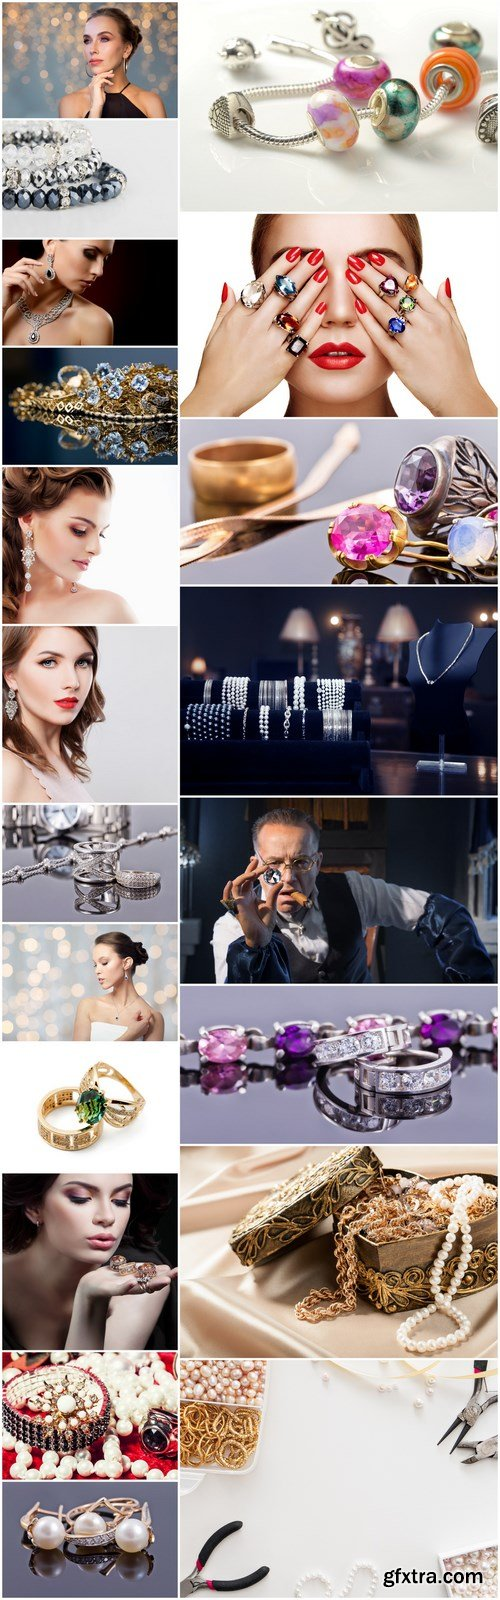 Jewelry Store #2 - 20 HQ Images